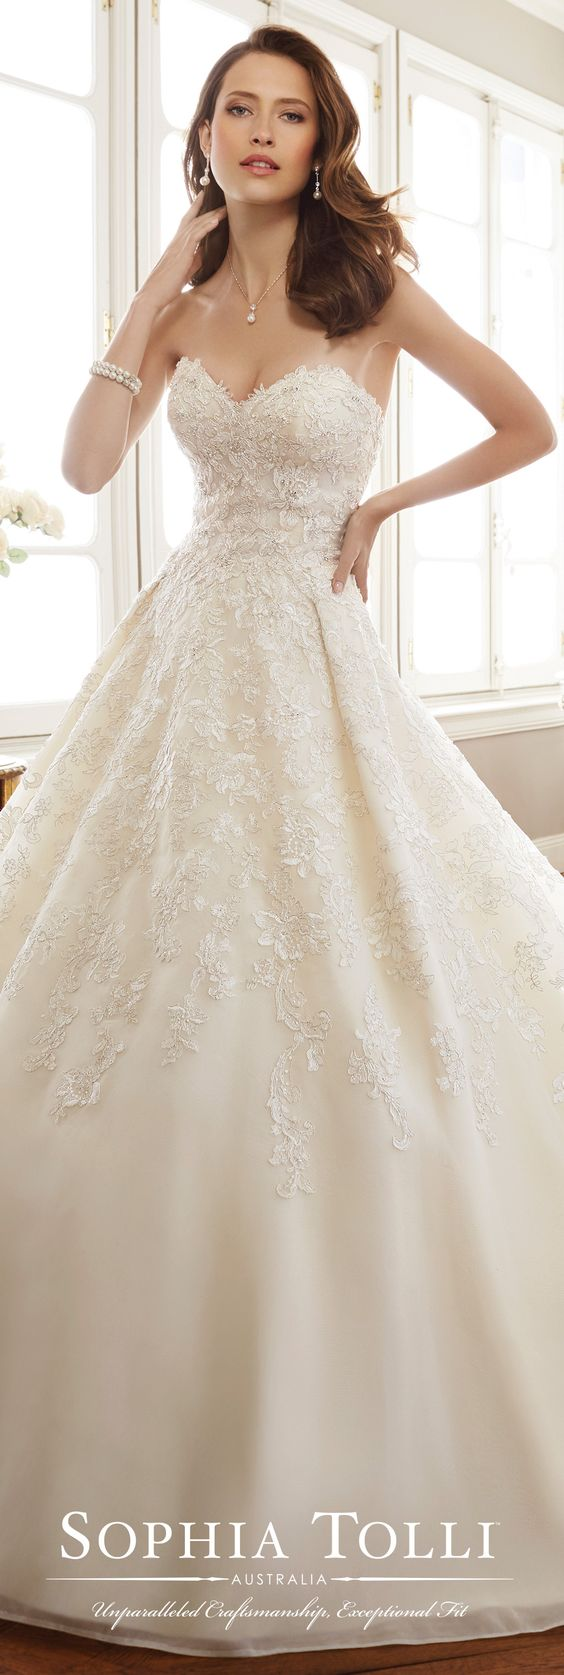 best images about pleated gowns on pinterest stella york lace